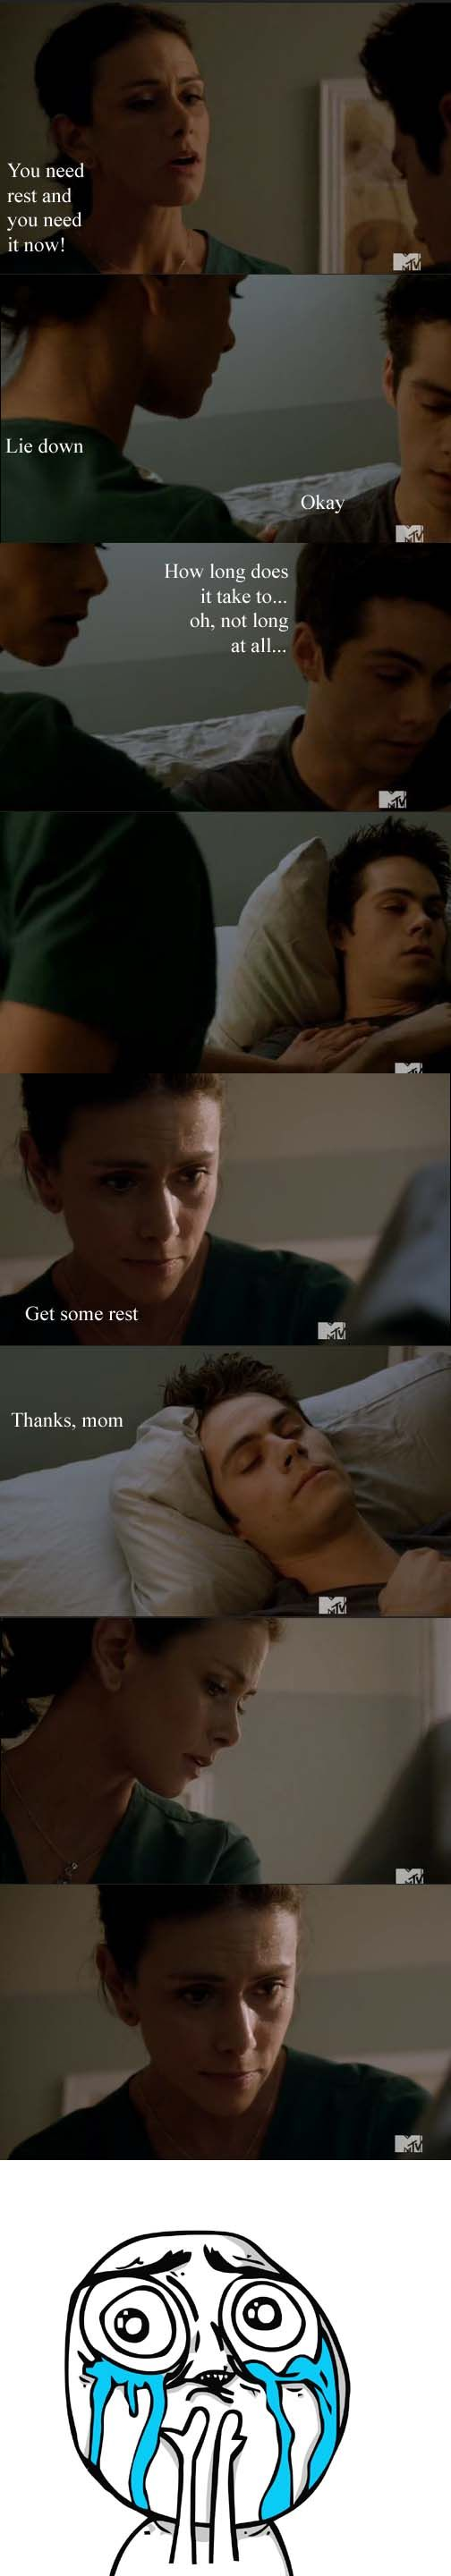 "Oh god this scene was sad (for anyone who doesn't get it, Stiles's (^^^) mom is dead, but he just said ""Thanks, mom"" to his best friend's (Scott) mom (Melissa) Who is a nurse and use medication to get him to sleep.)"